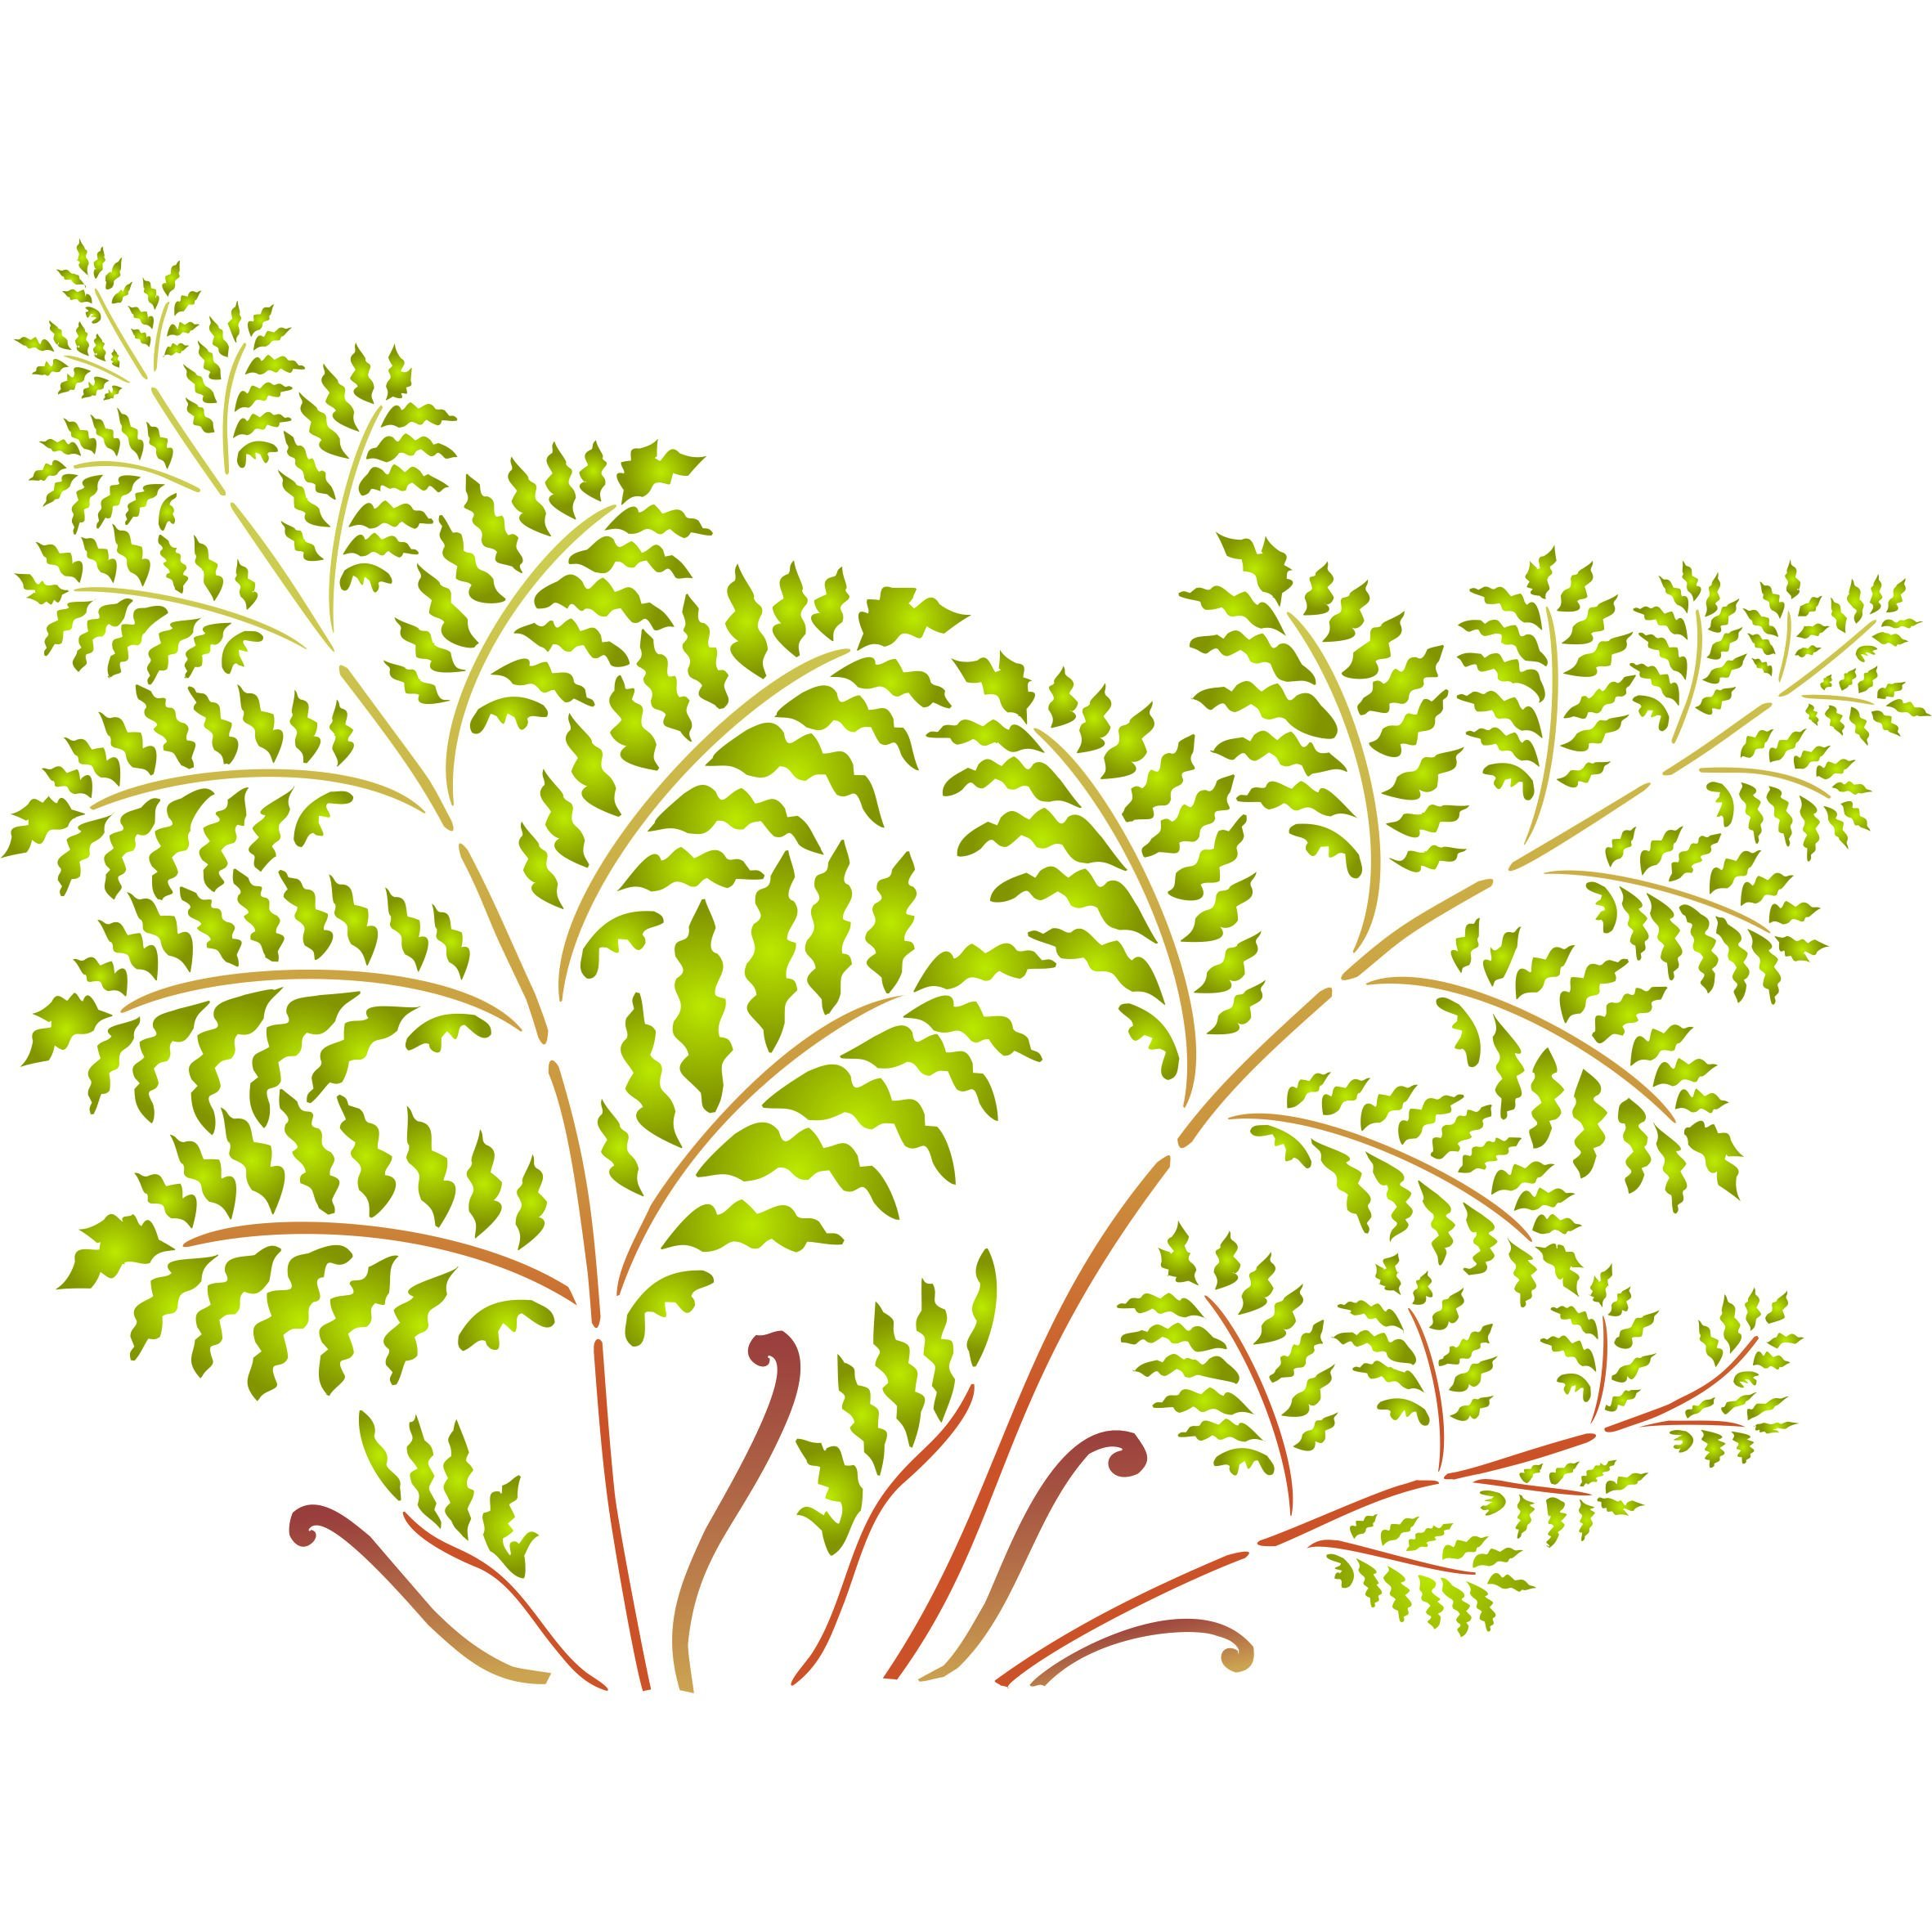 Tree Fern Stencil - (size 20.5''w x 15''h) Reusable Wall Stencils for Painting - Best Quality Wall Art Décor Ideas - Use on Walls, Floors, Fabrics, Glass, Wood, Terracotta, and More...